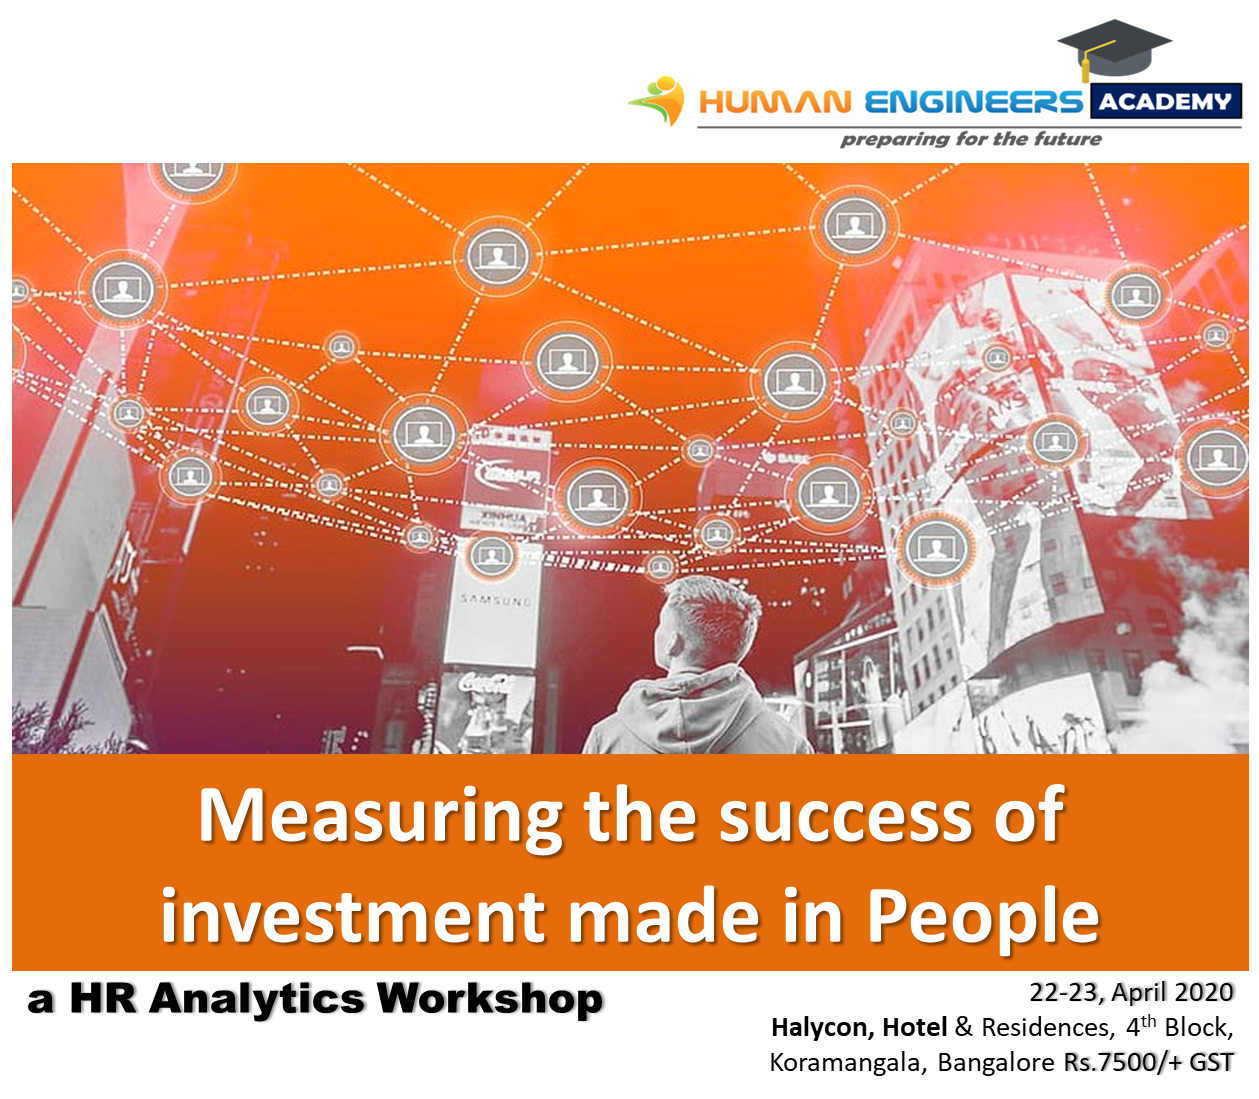 HR Analytics Workshop from Human Engineers Academy